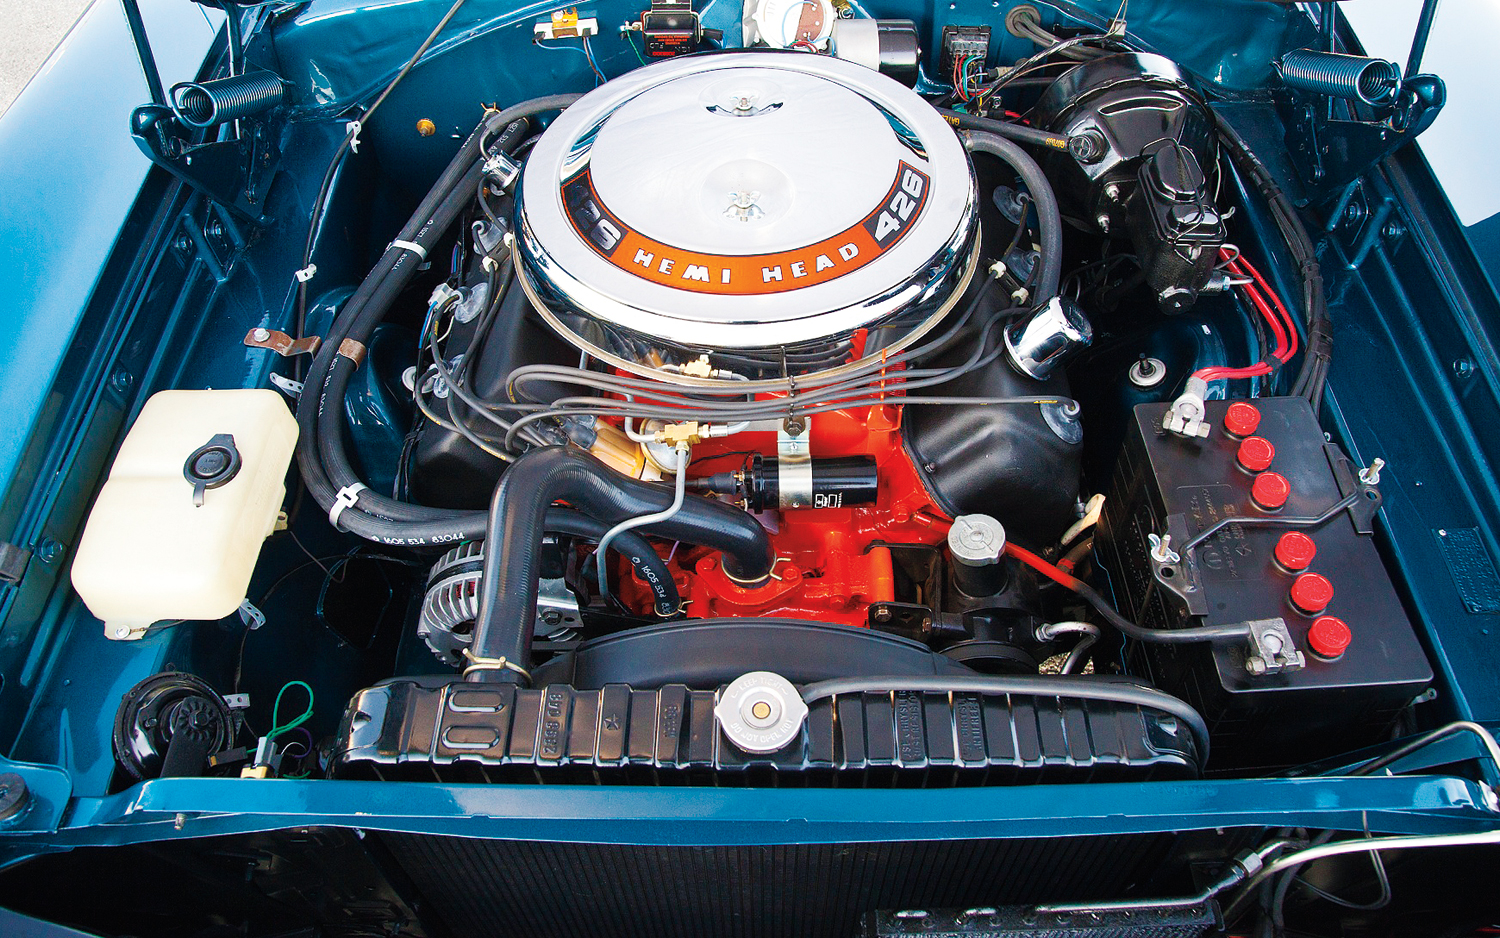 Celebrate Hemi Day Our Top 5 Favorite Chrysler V 8s Motortrend